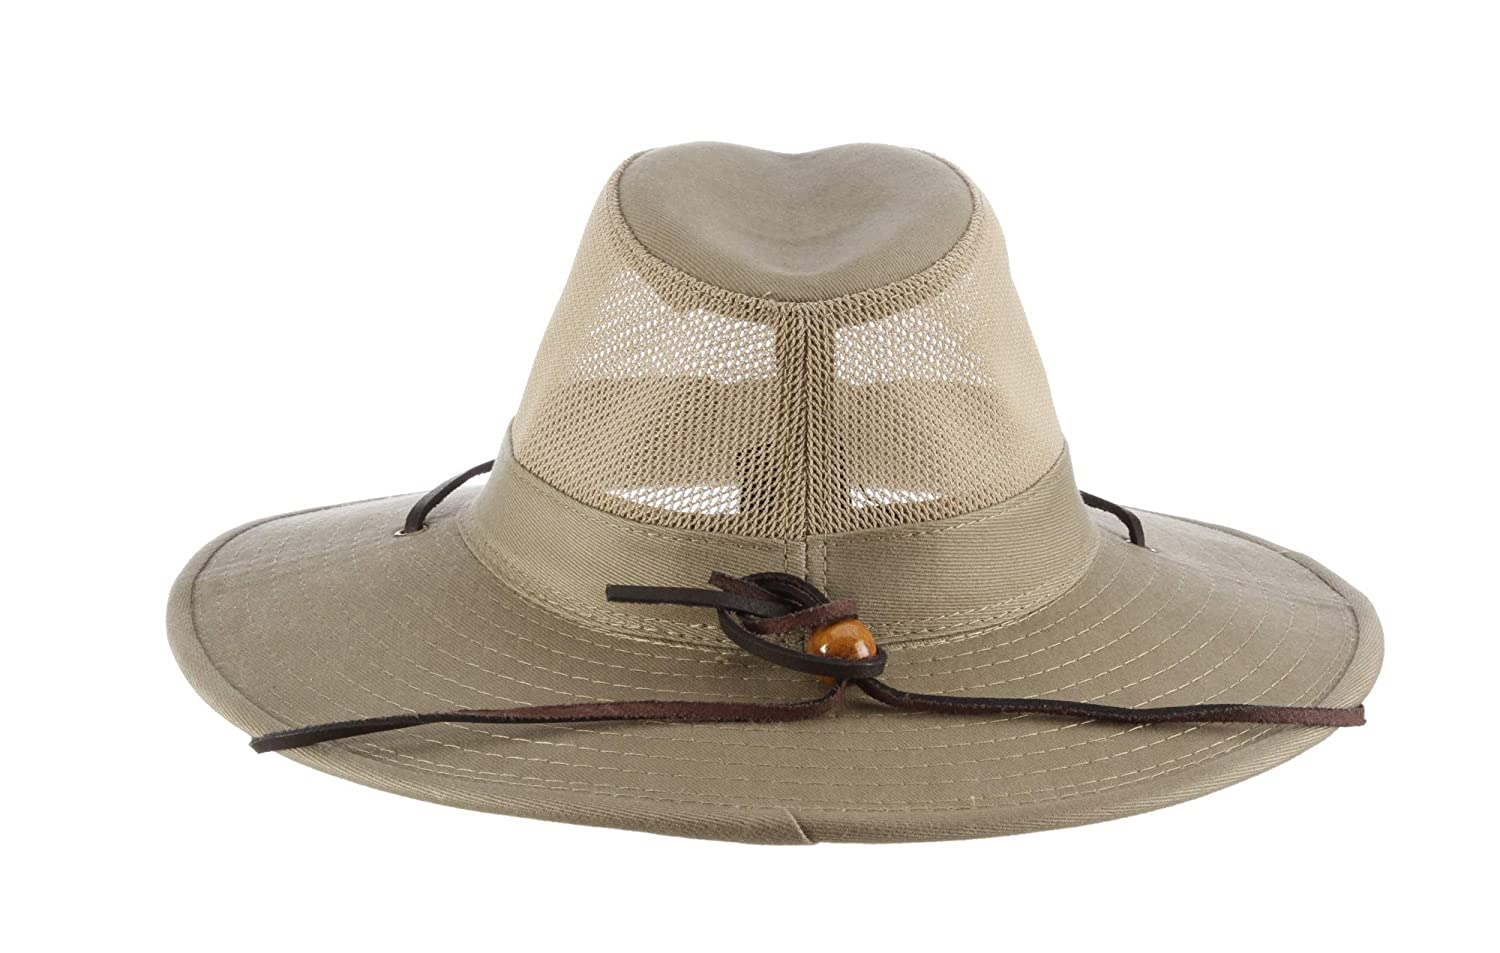 00d884bc9f458e Dorfman Pacific Men's Brushed Twill-and-Mesh Safari Hat with Genuine  Leather Trim at Amazon Men's Clothing store: Dorfman Pacific Hats For Men